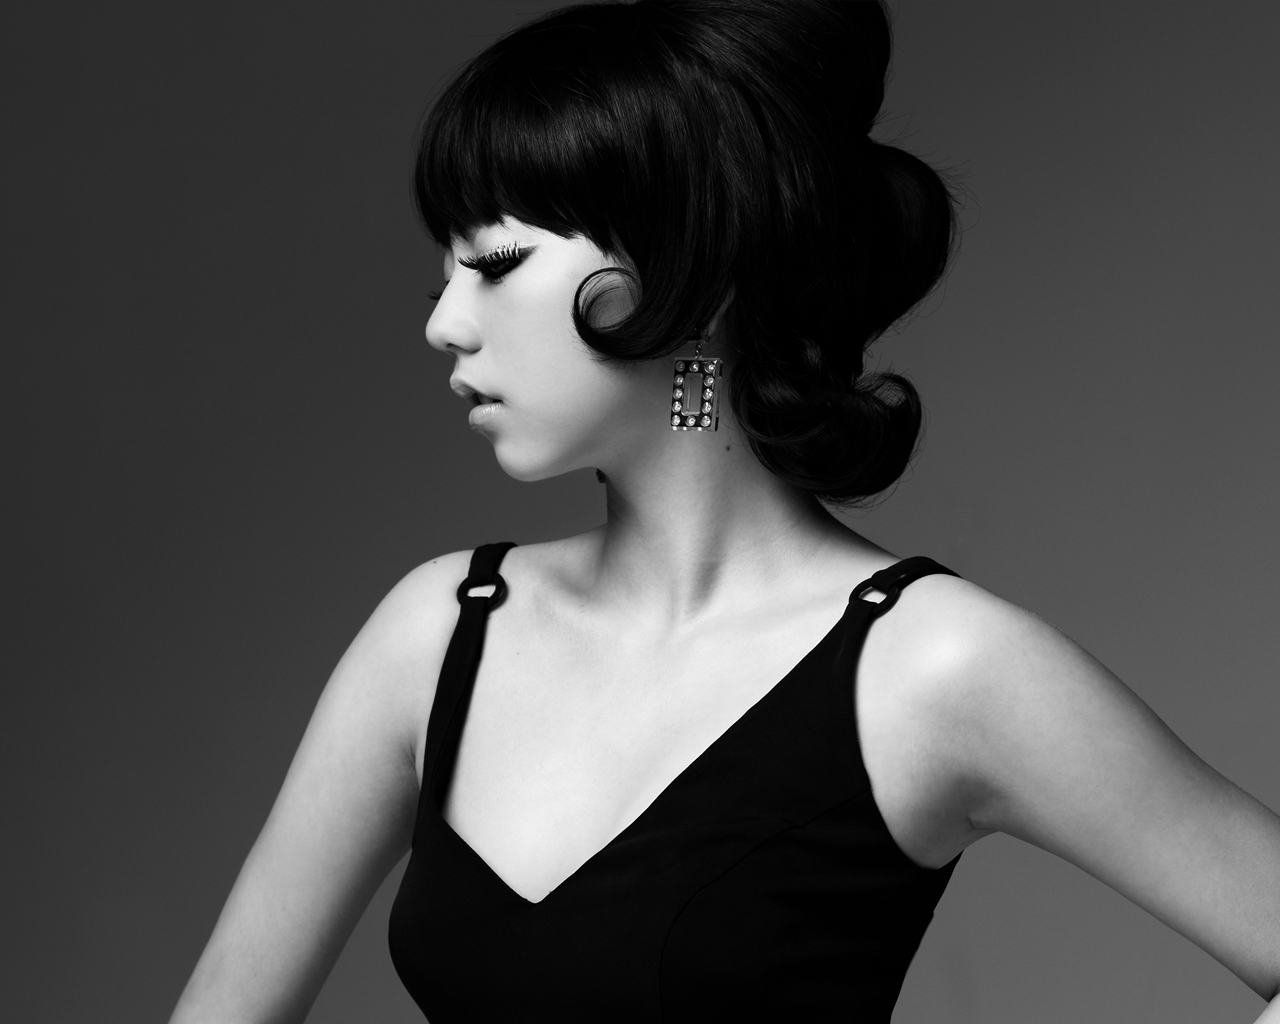 http://wondergirls.files.wordpress.com/2008/10/20089935445sohee.jpg